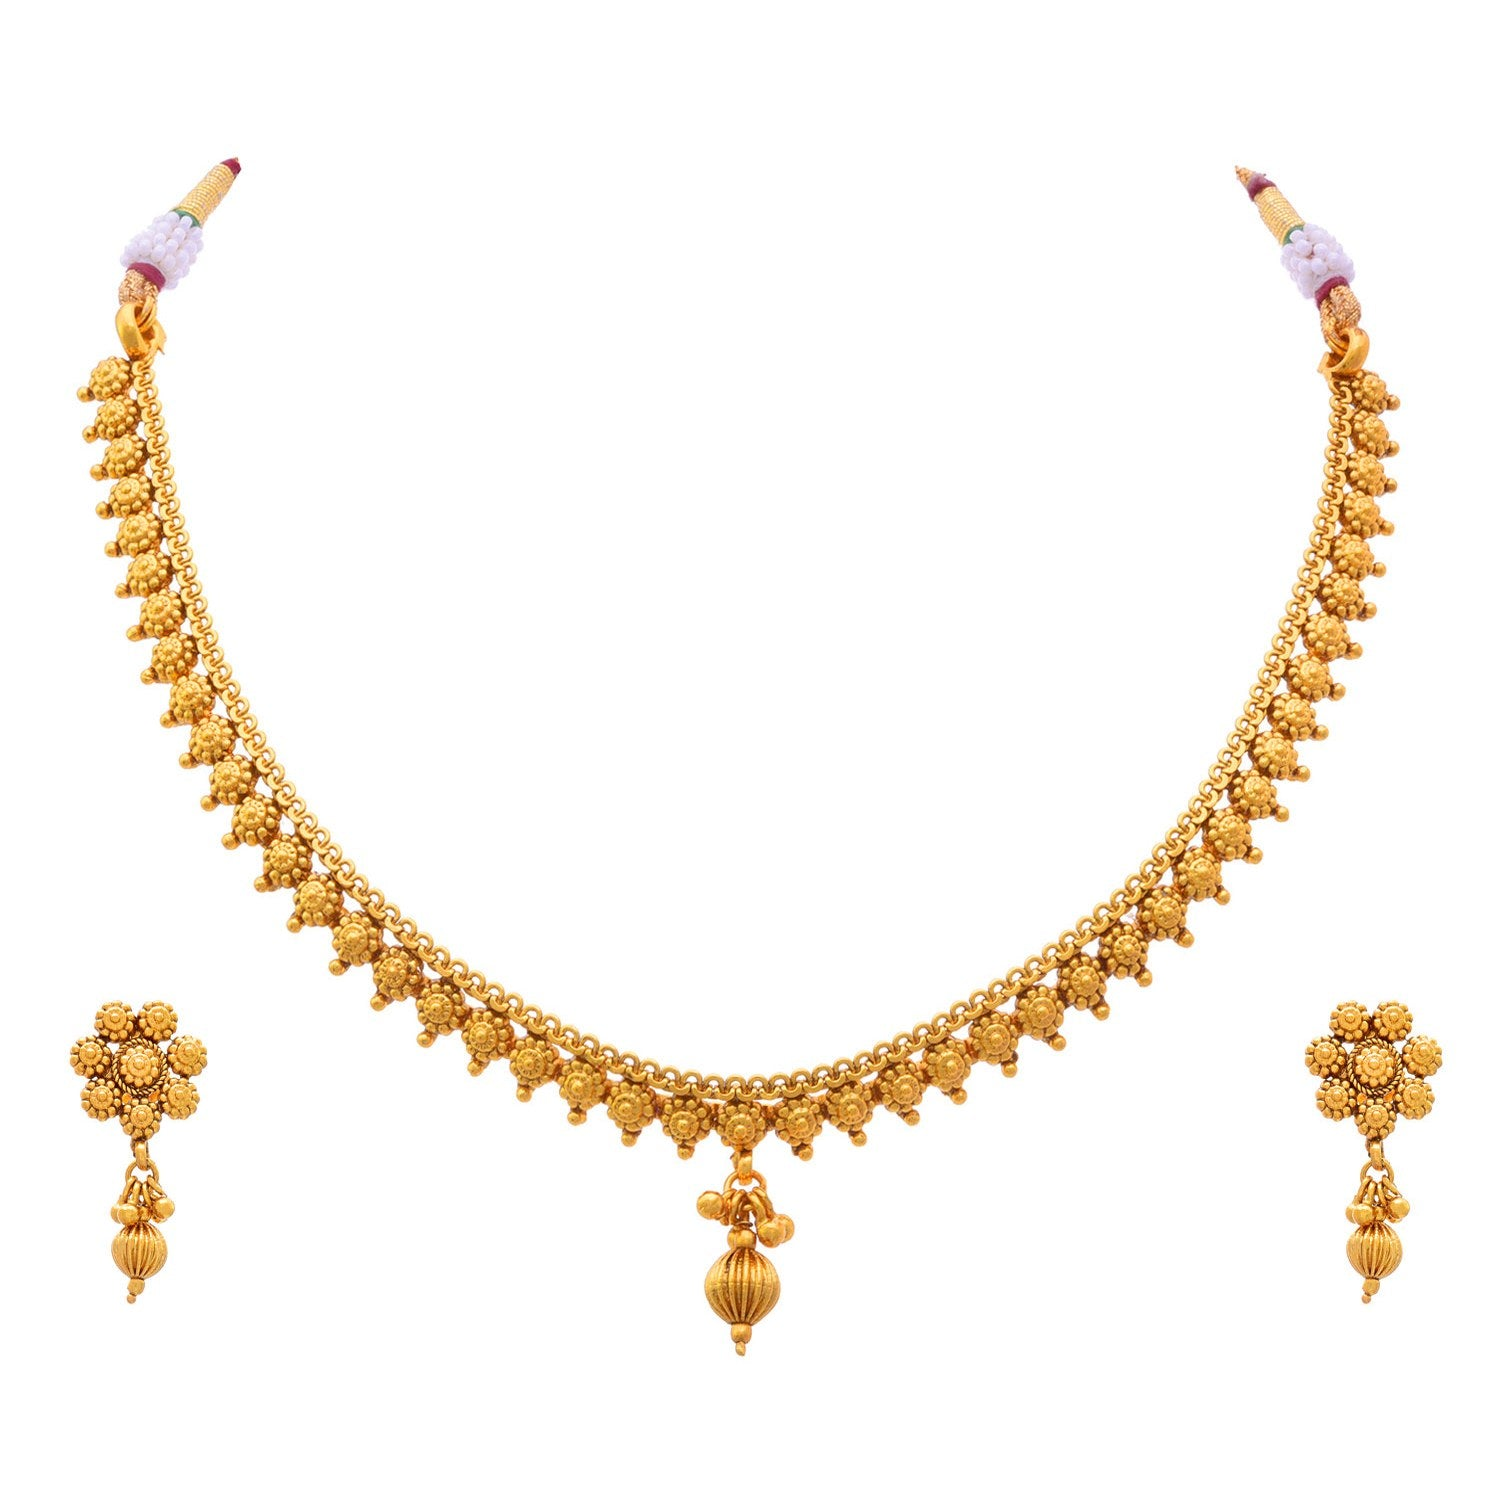 Traditional Ethnic One Gram Gold Plated Delicate Necklace Set / Jewellery Set For Women